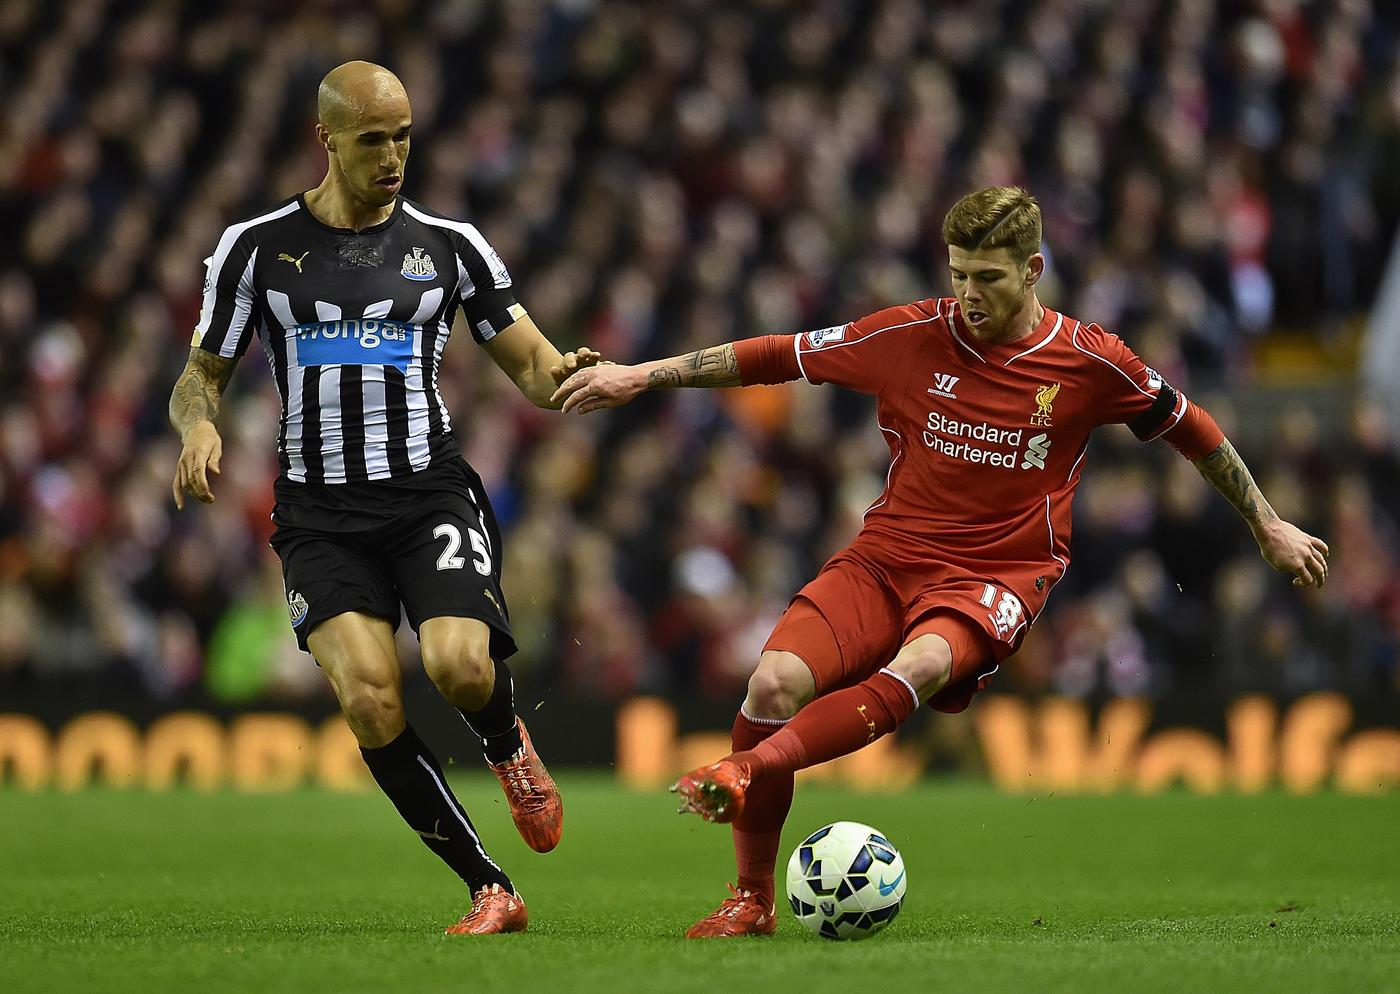 Hull City v Liverpool Premier League: Why Alberto Moreno must be in the Liverpool line-up tonight